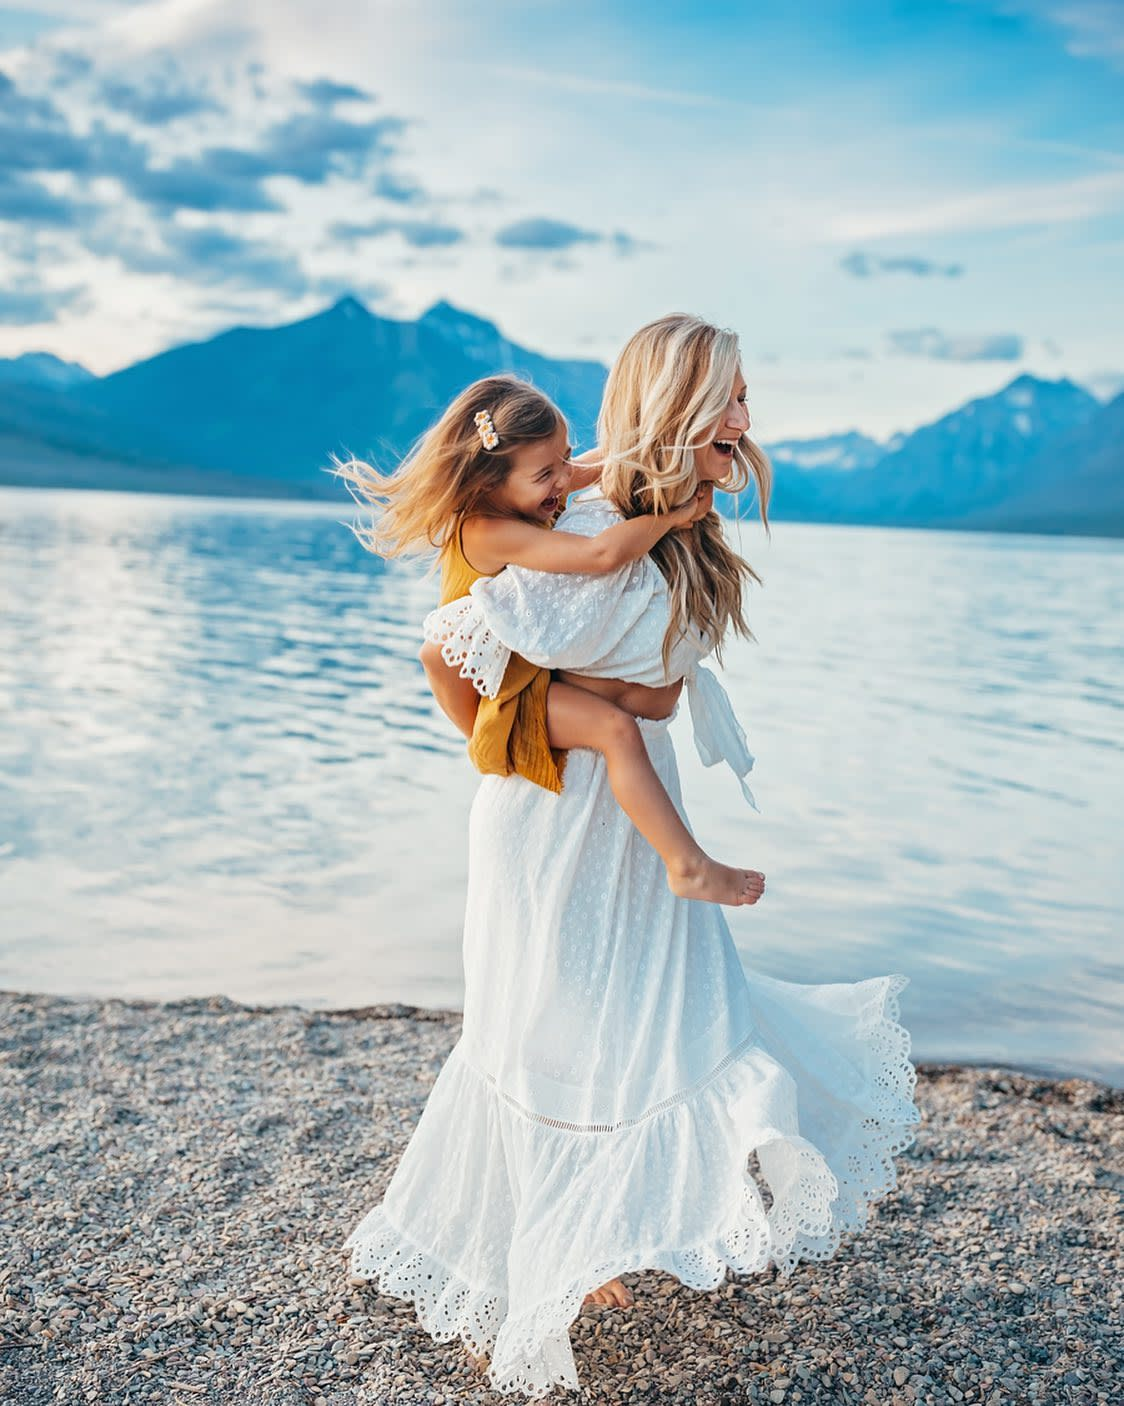 Hailey Faria Photography, Mom and Child Dancing, Mom and Child by Lake, Portrait Photography, Mom and Child Pose